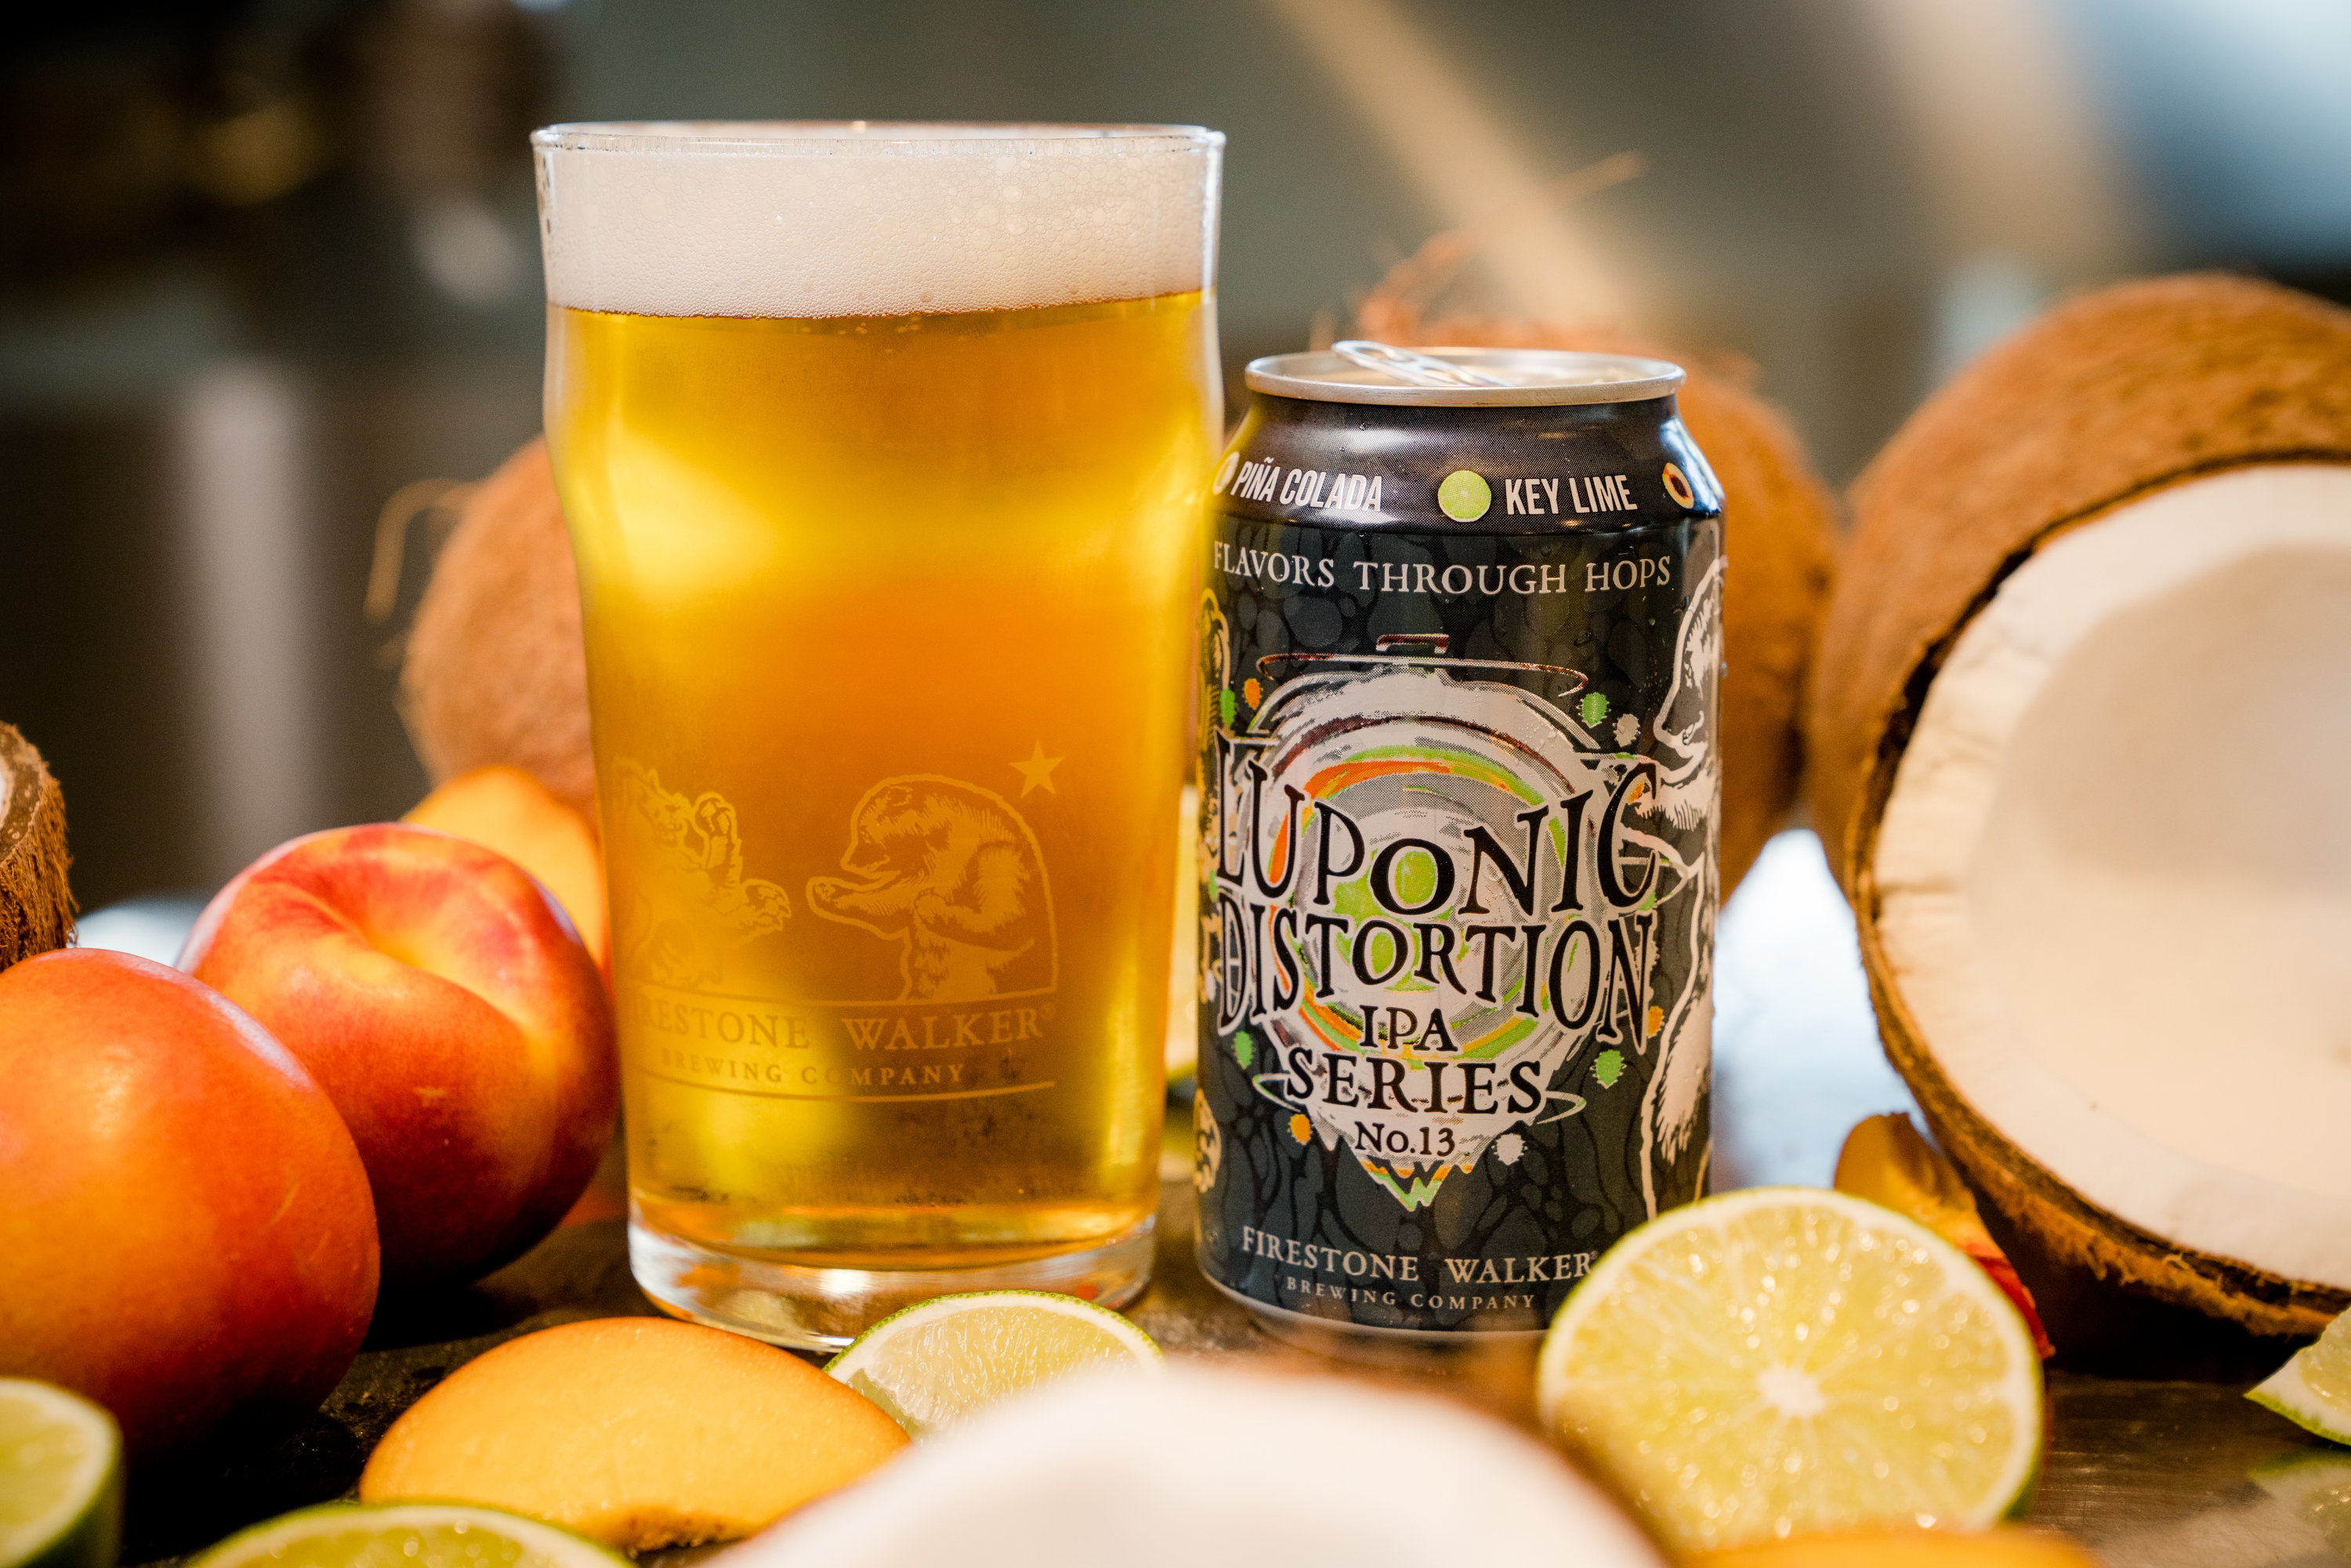 image of Luponic Distortion No. 13 courtesy of Firestone Walker Brewing